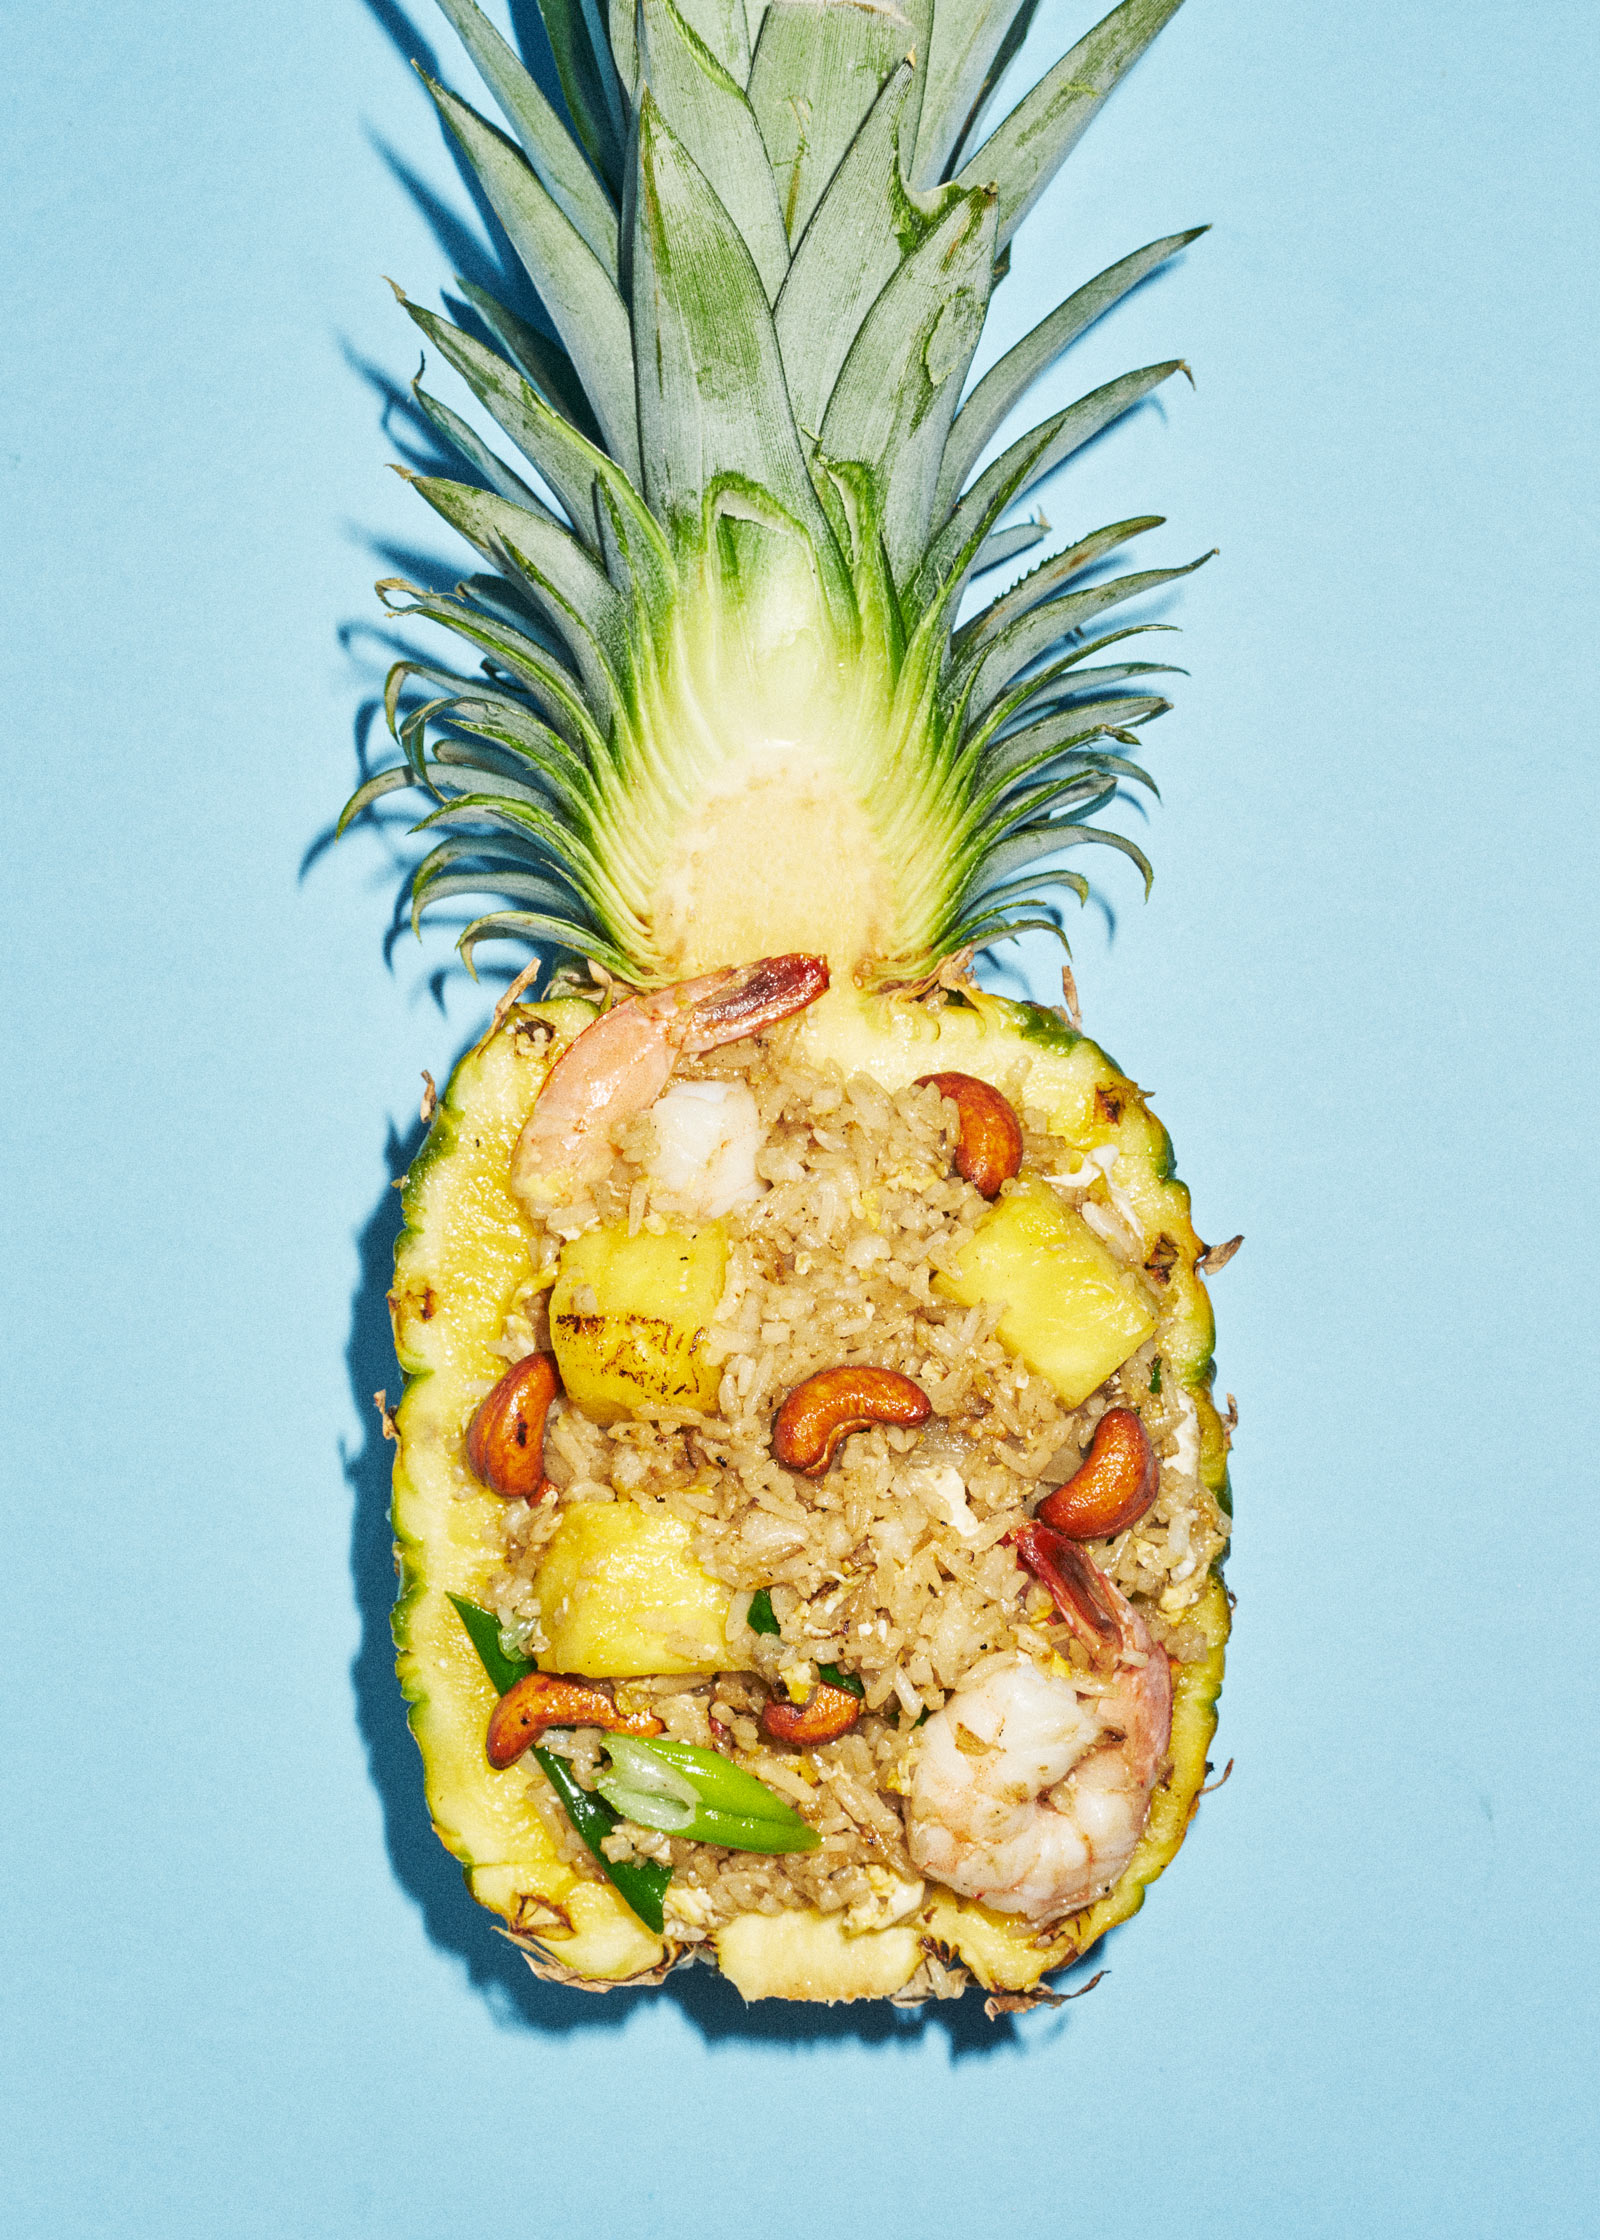 89_PineappleFriedRice_004.jpg